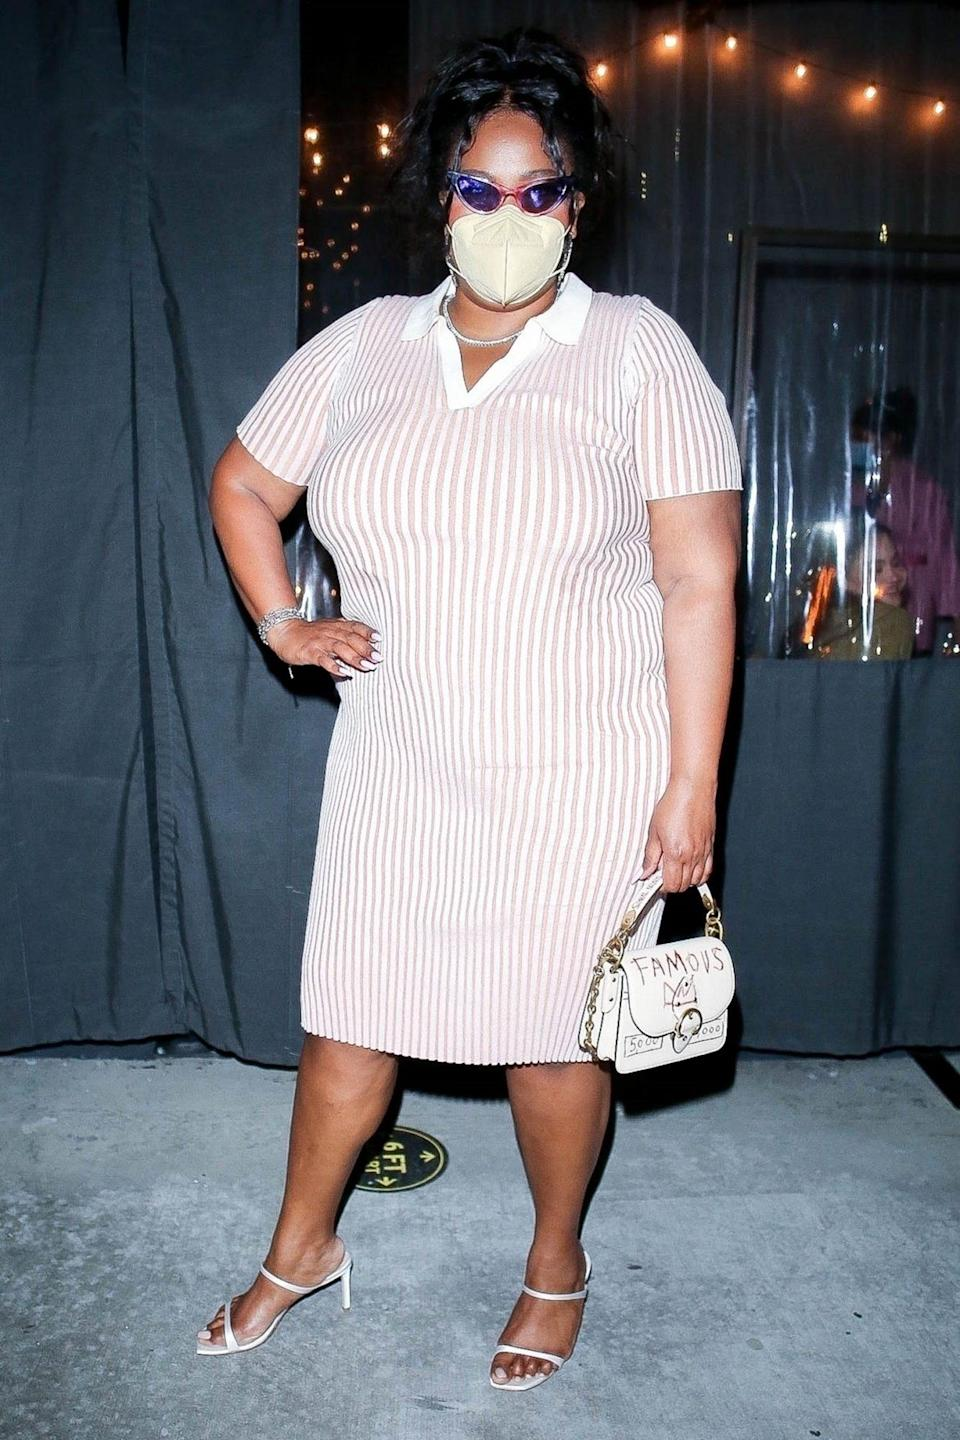 <p>Lizzo steps out in a striped dress and white sandals as she leaves dinner at Crossroads Kitchen in L.A. on Monday night. </p>